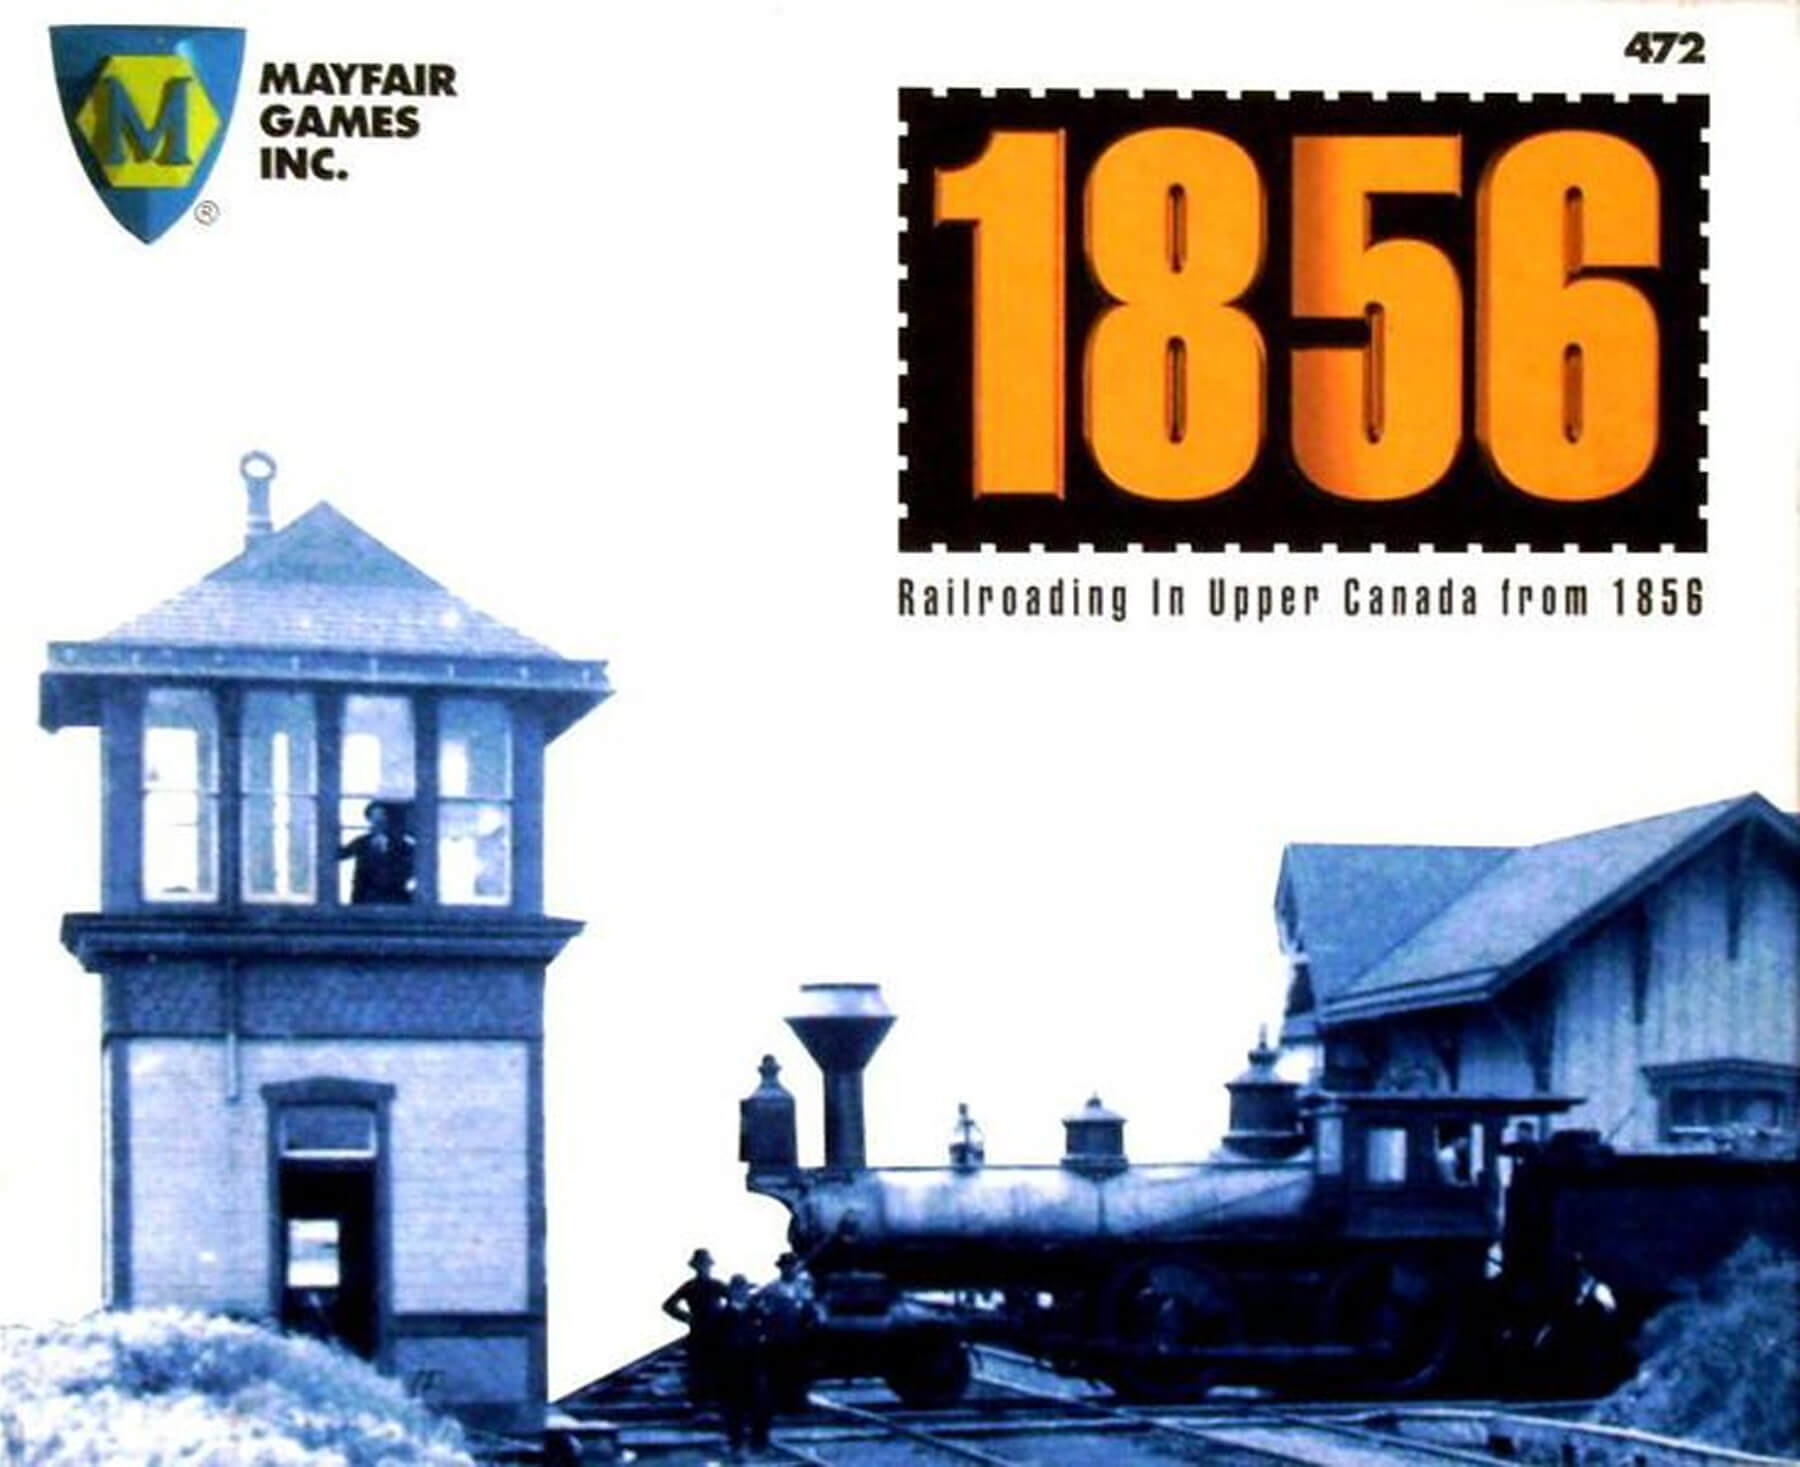 The cover art for the board game 1856.